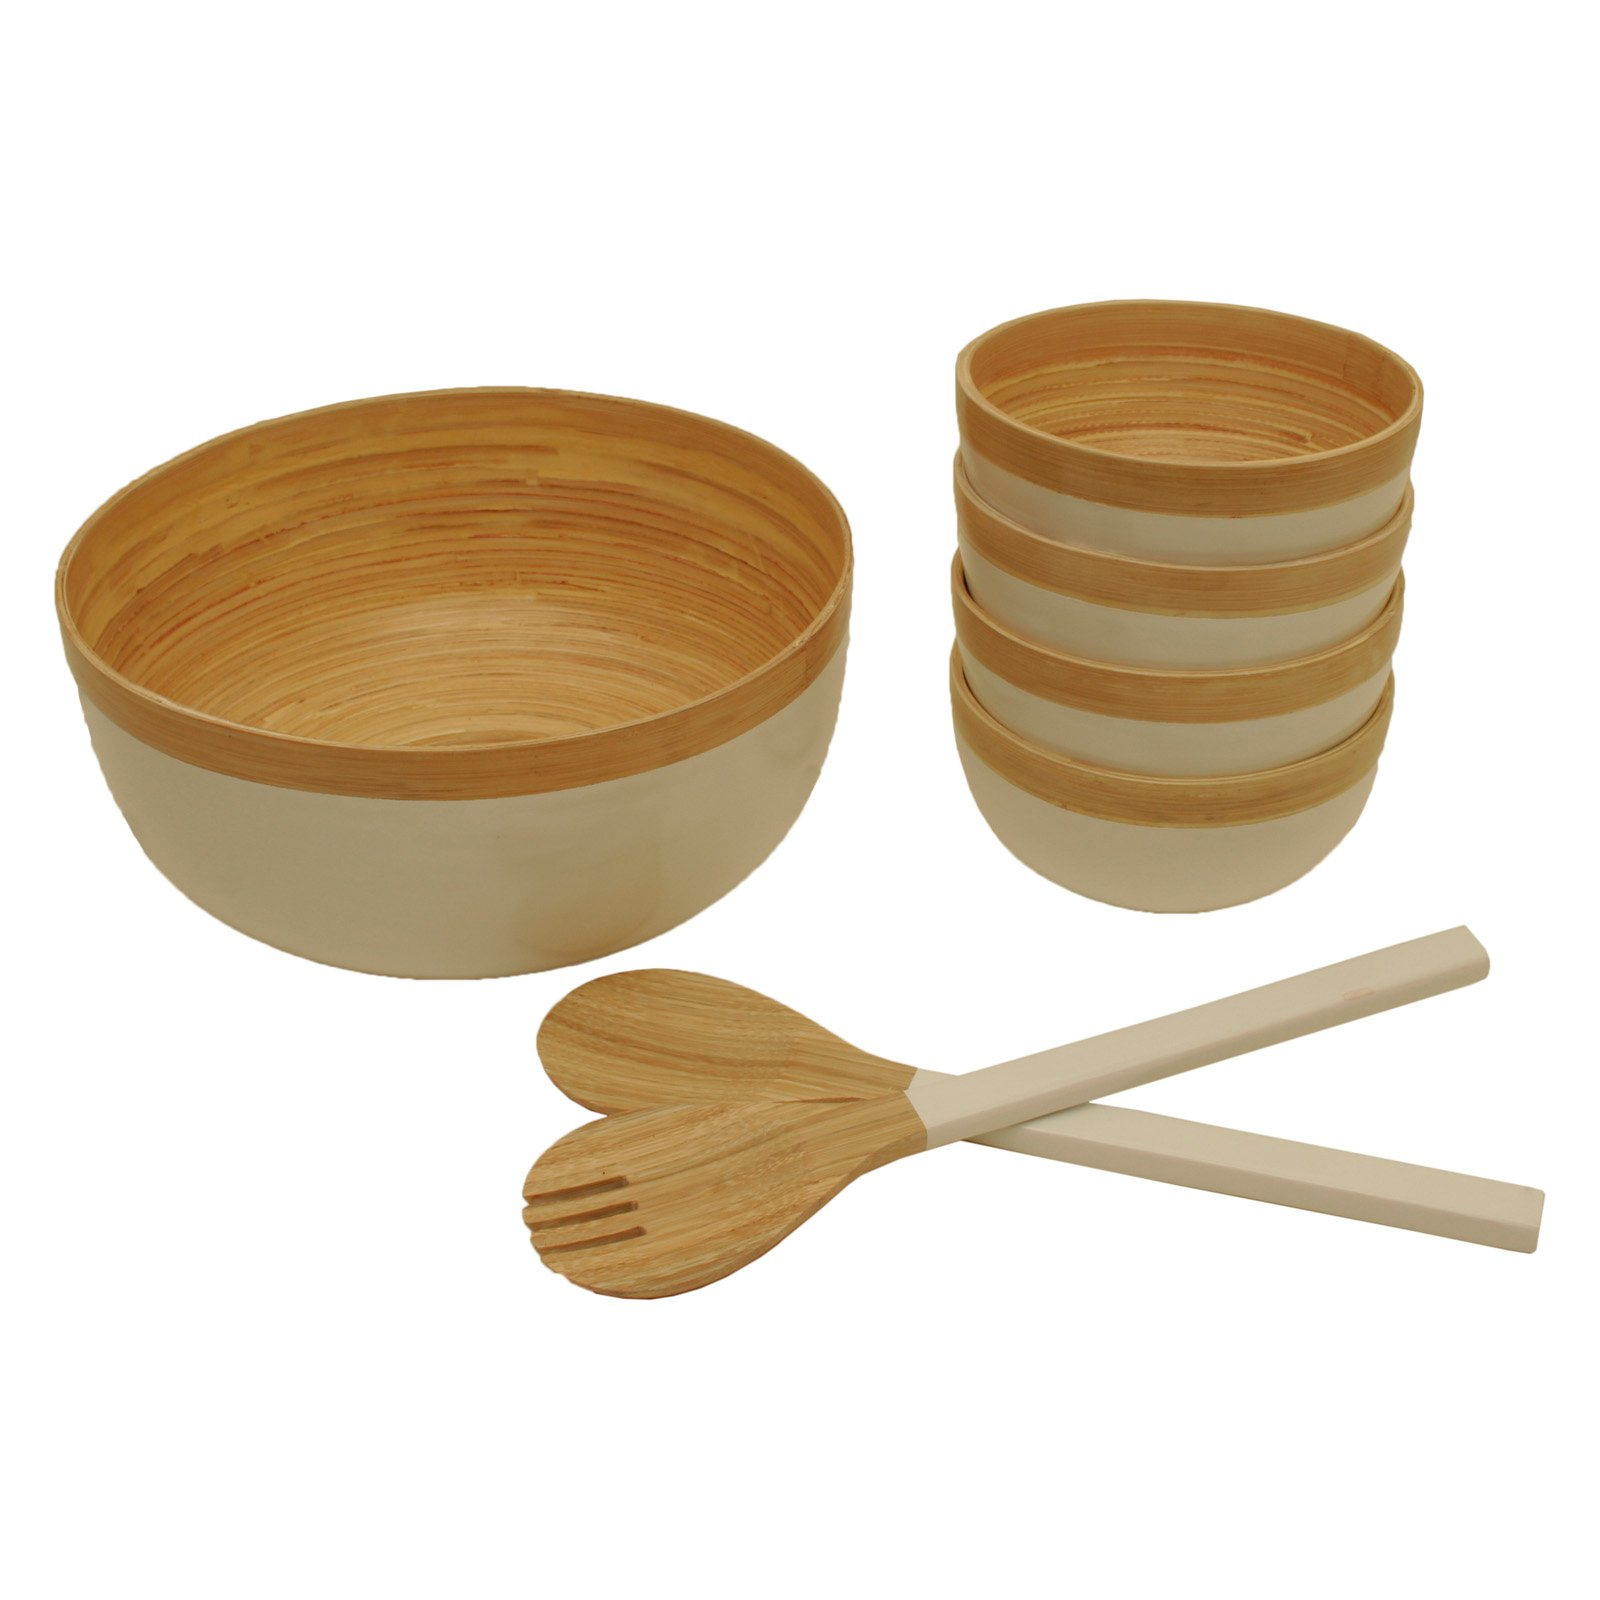 Wald Imports Complete 7 Piece Salad Serving Set